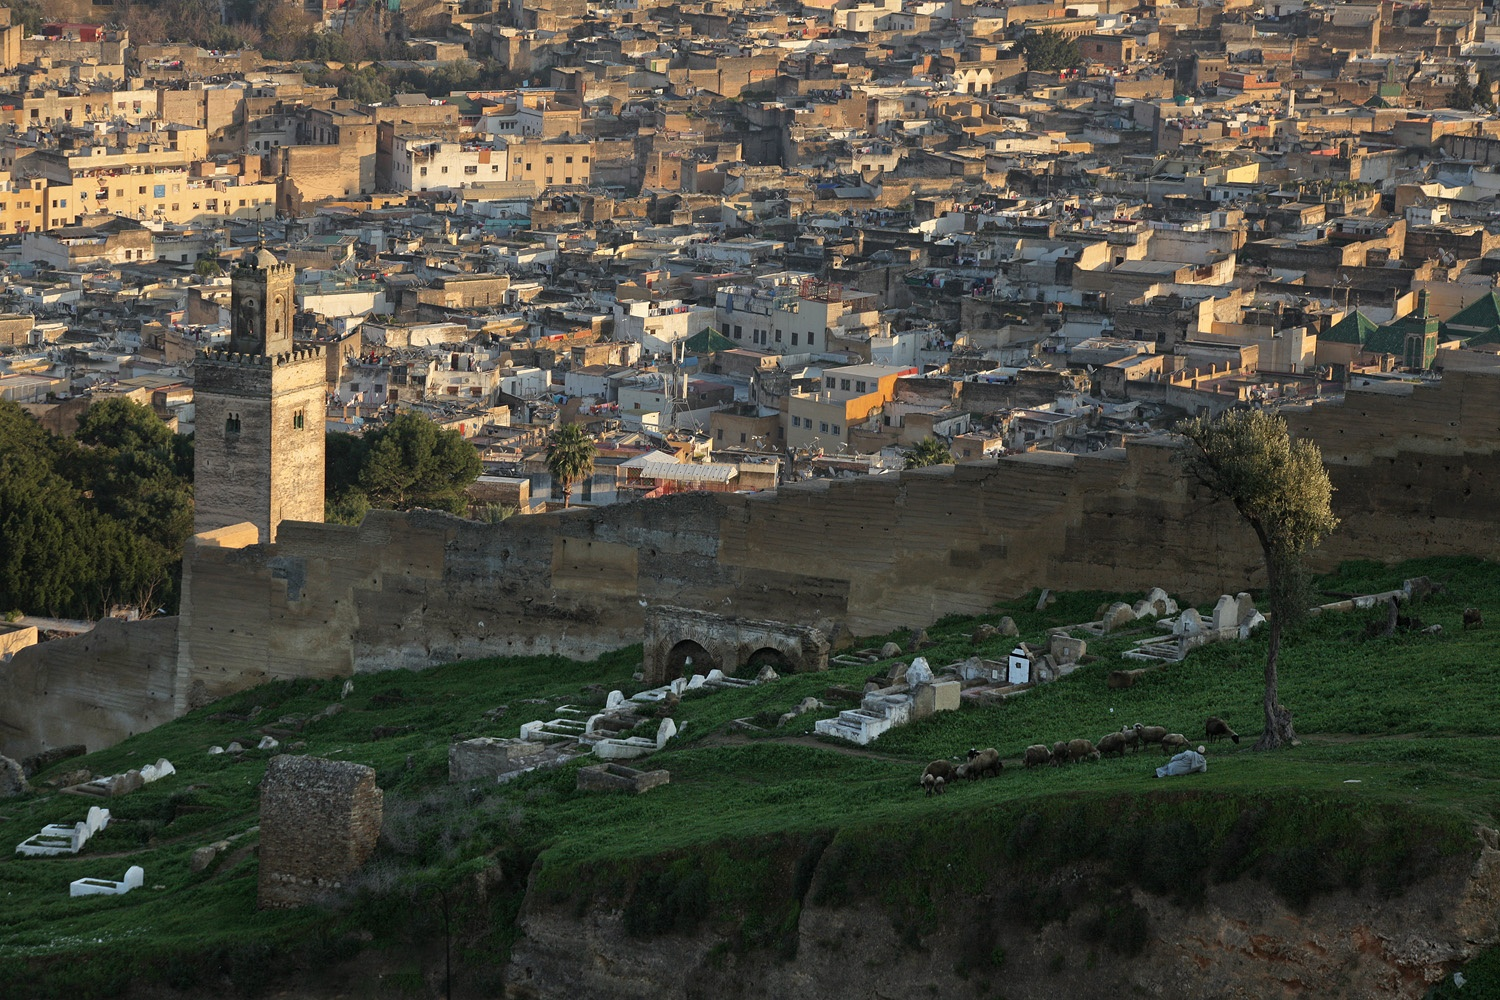 citywall From the Merenid Tombs,  Fes el Bali, Morocco, 2013